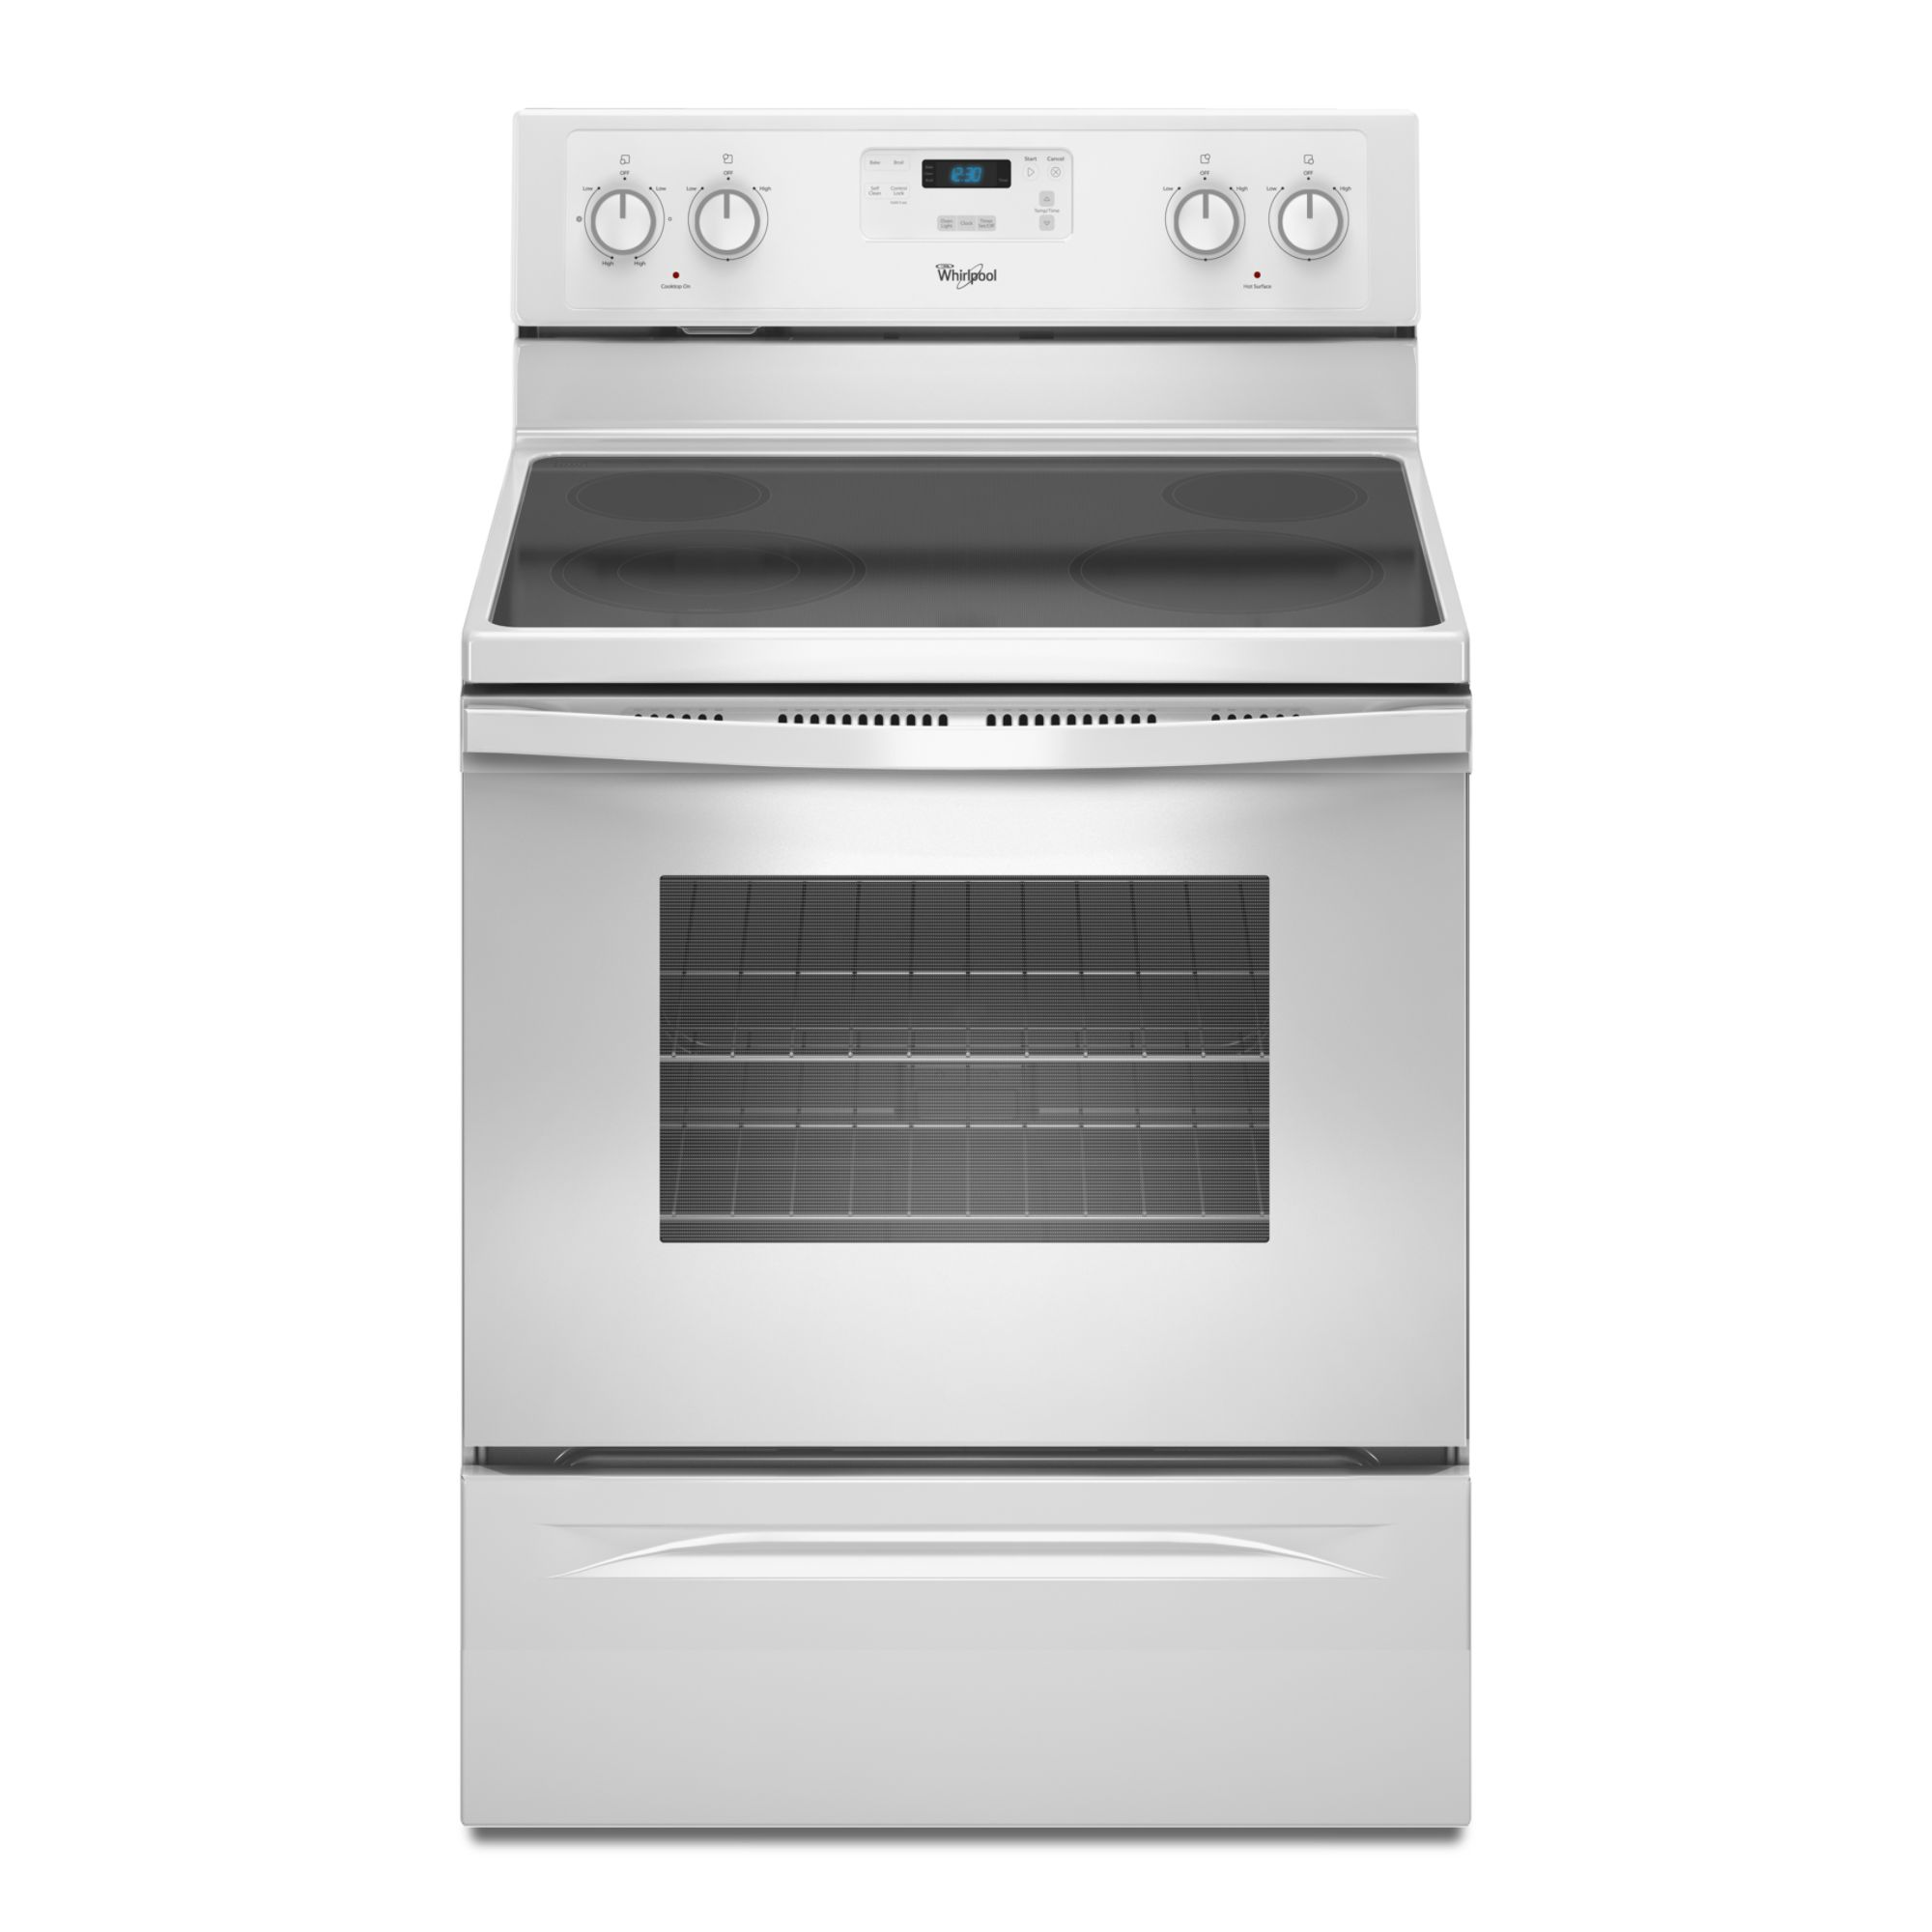 4.8 cu. ft. Self-Cleaning Electric Range - White